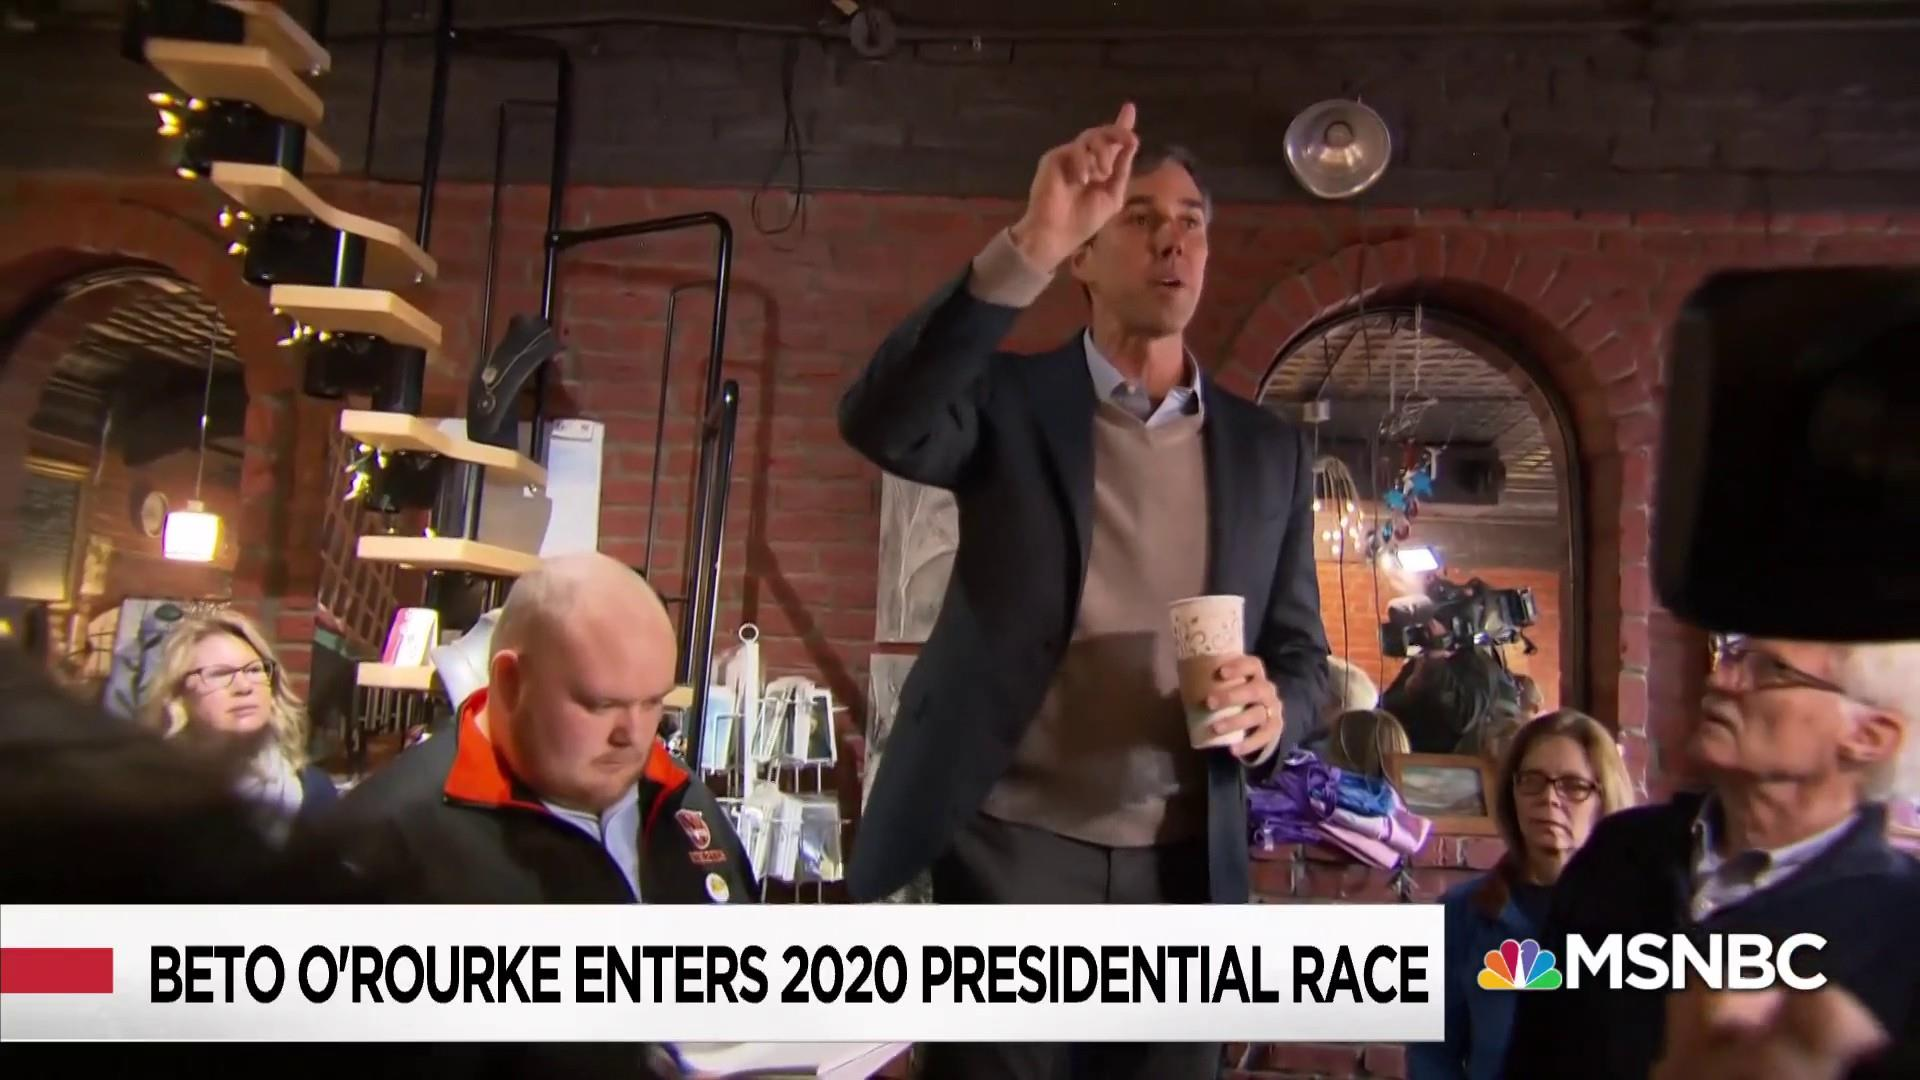 Beto O'Rourke Enters 2020 Race and Sends Message to Dems: Unite Against Trump